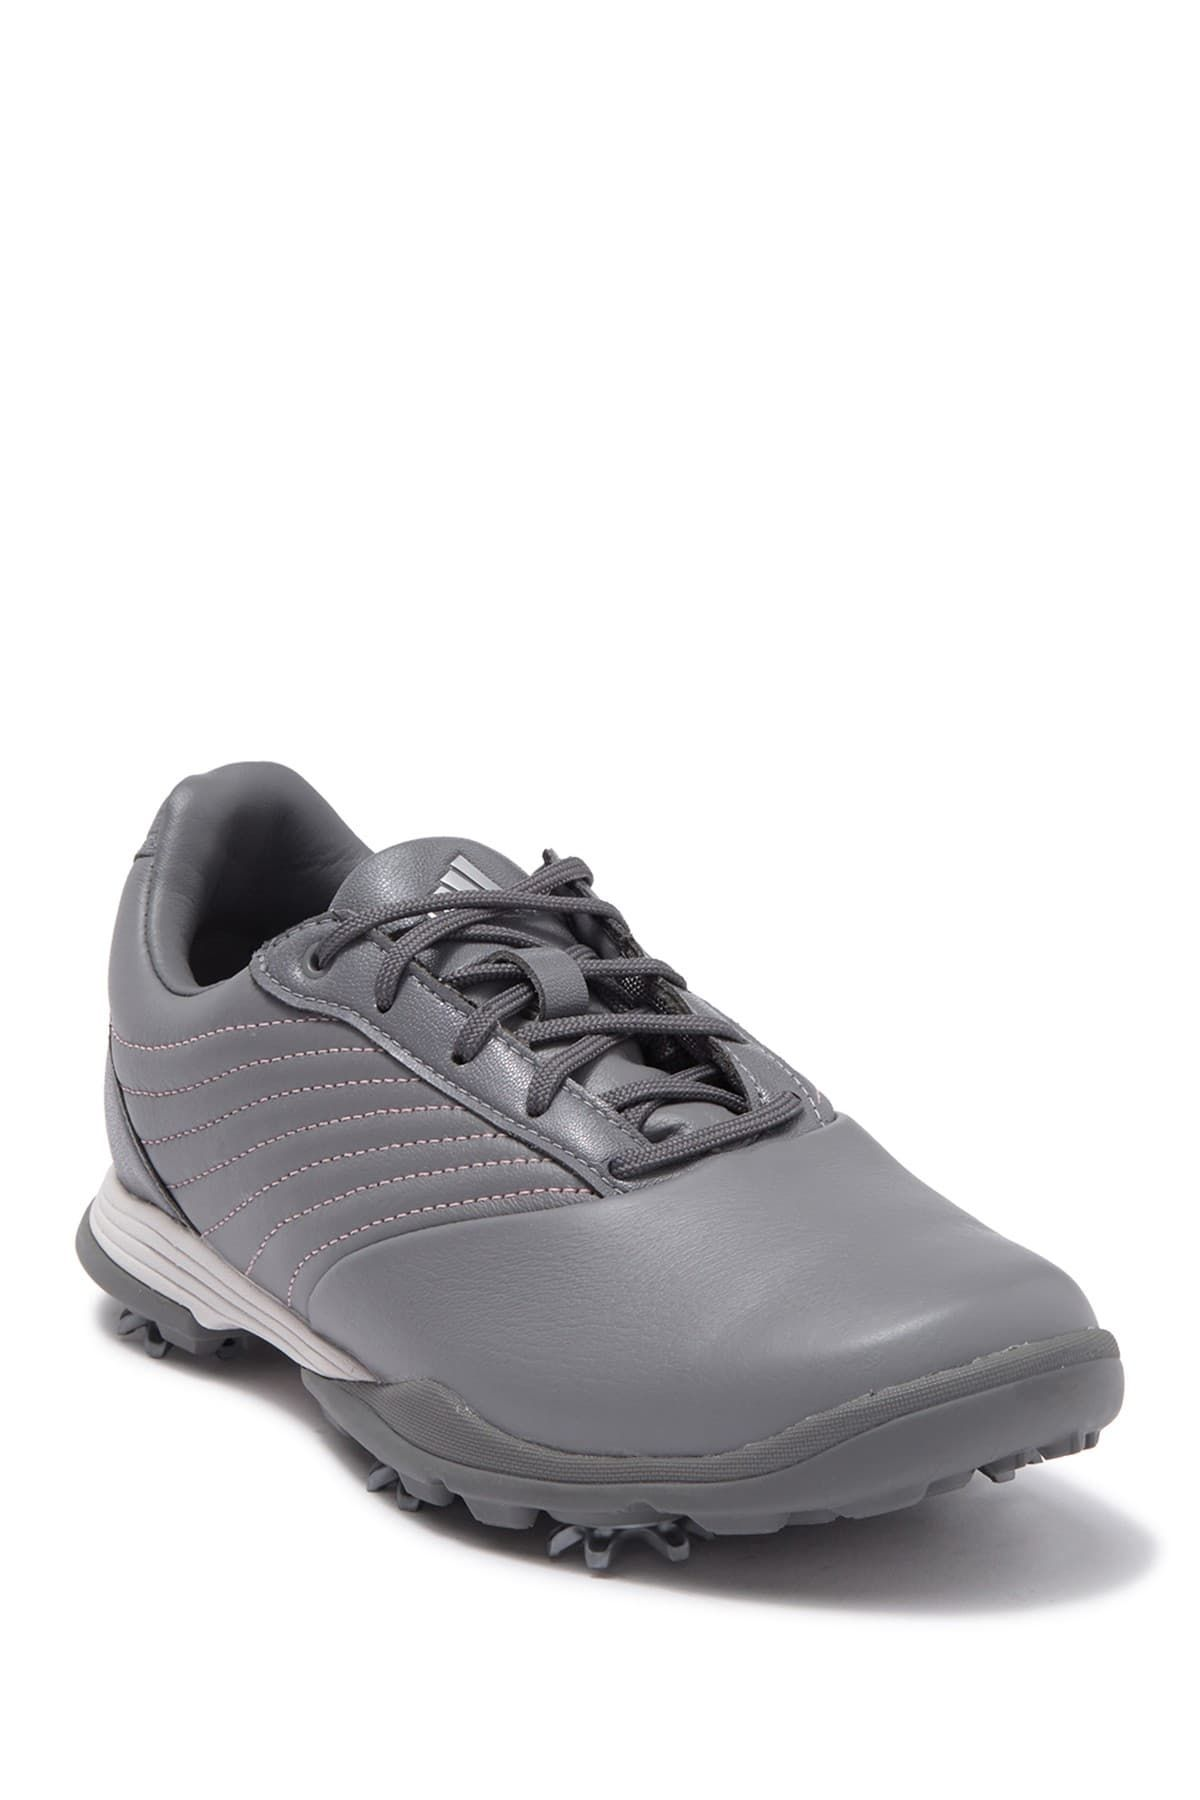 20++ Best golf shoes for foot support information